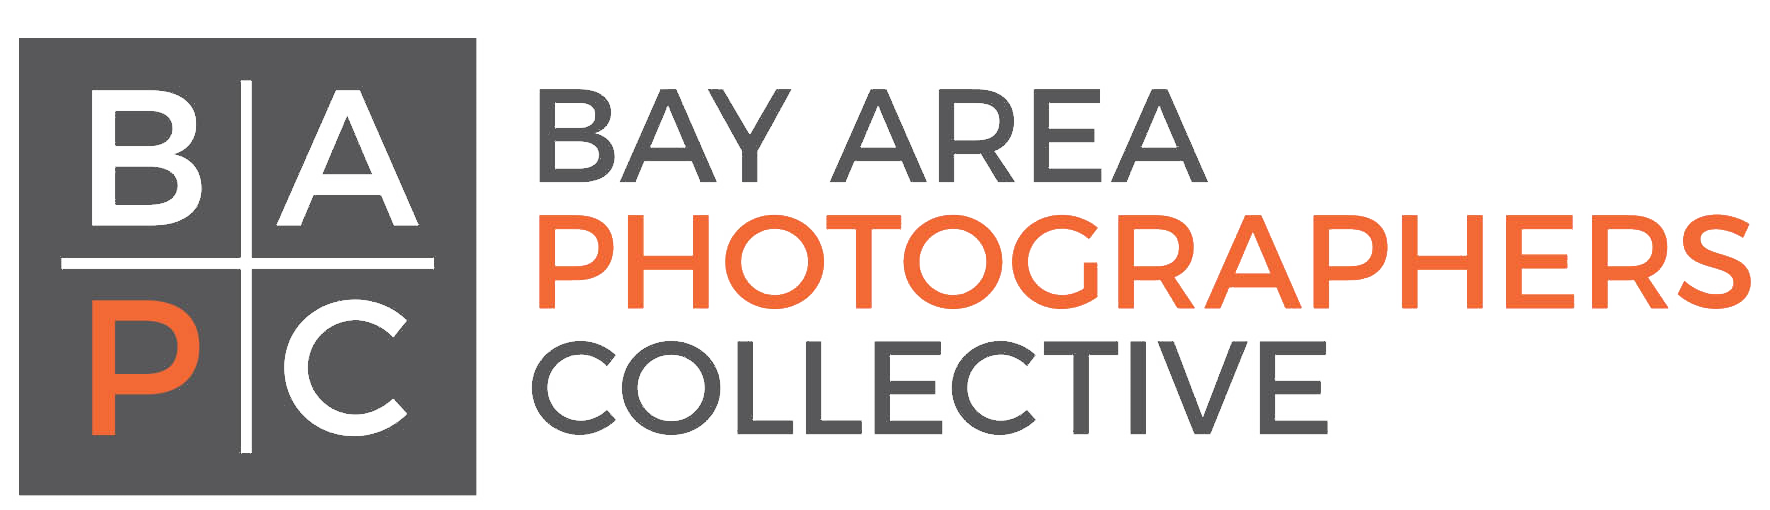 Bay Area Photographers Collective